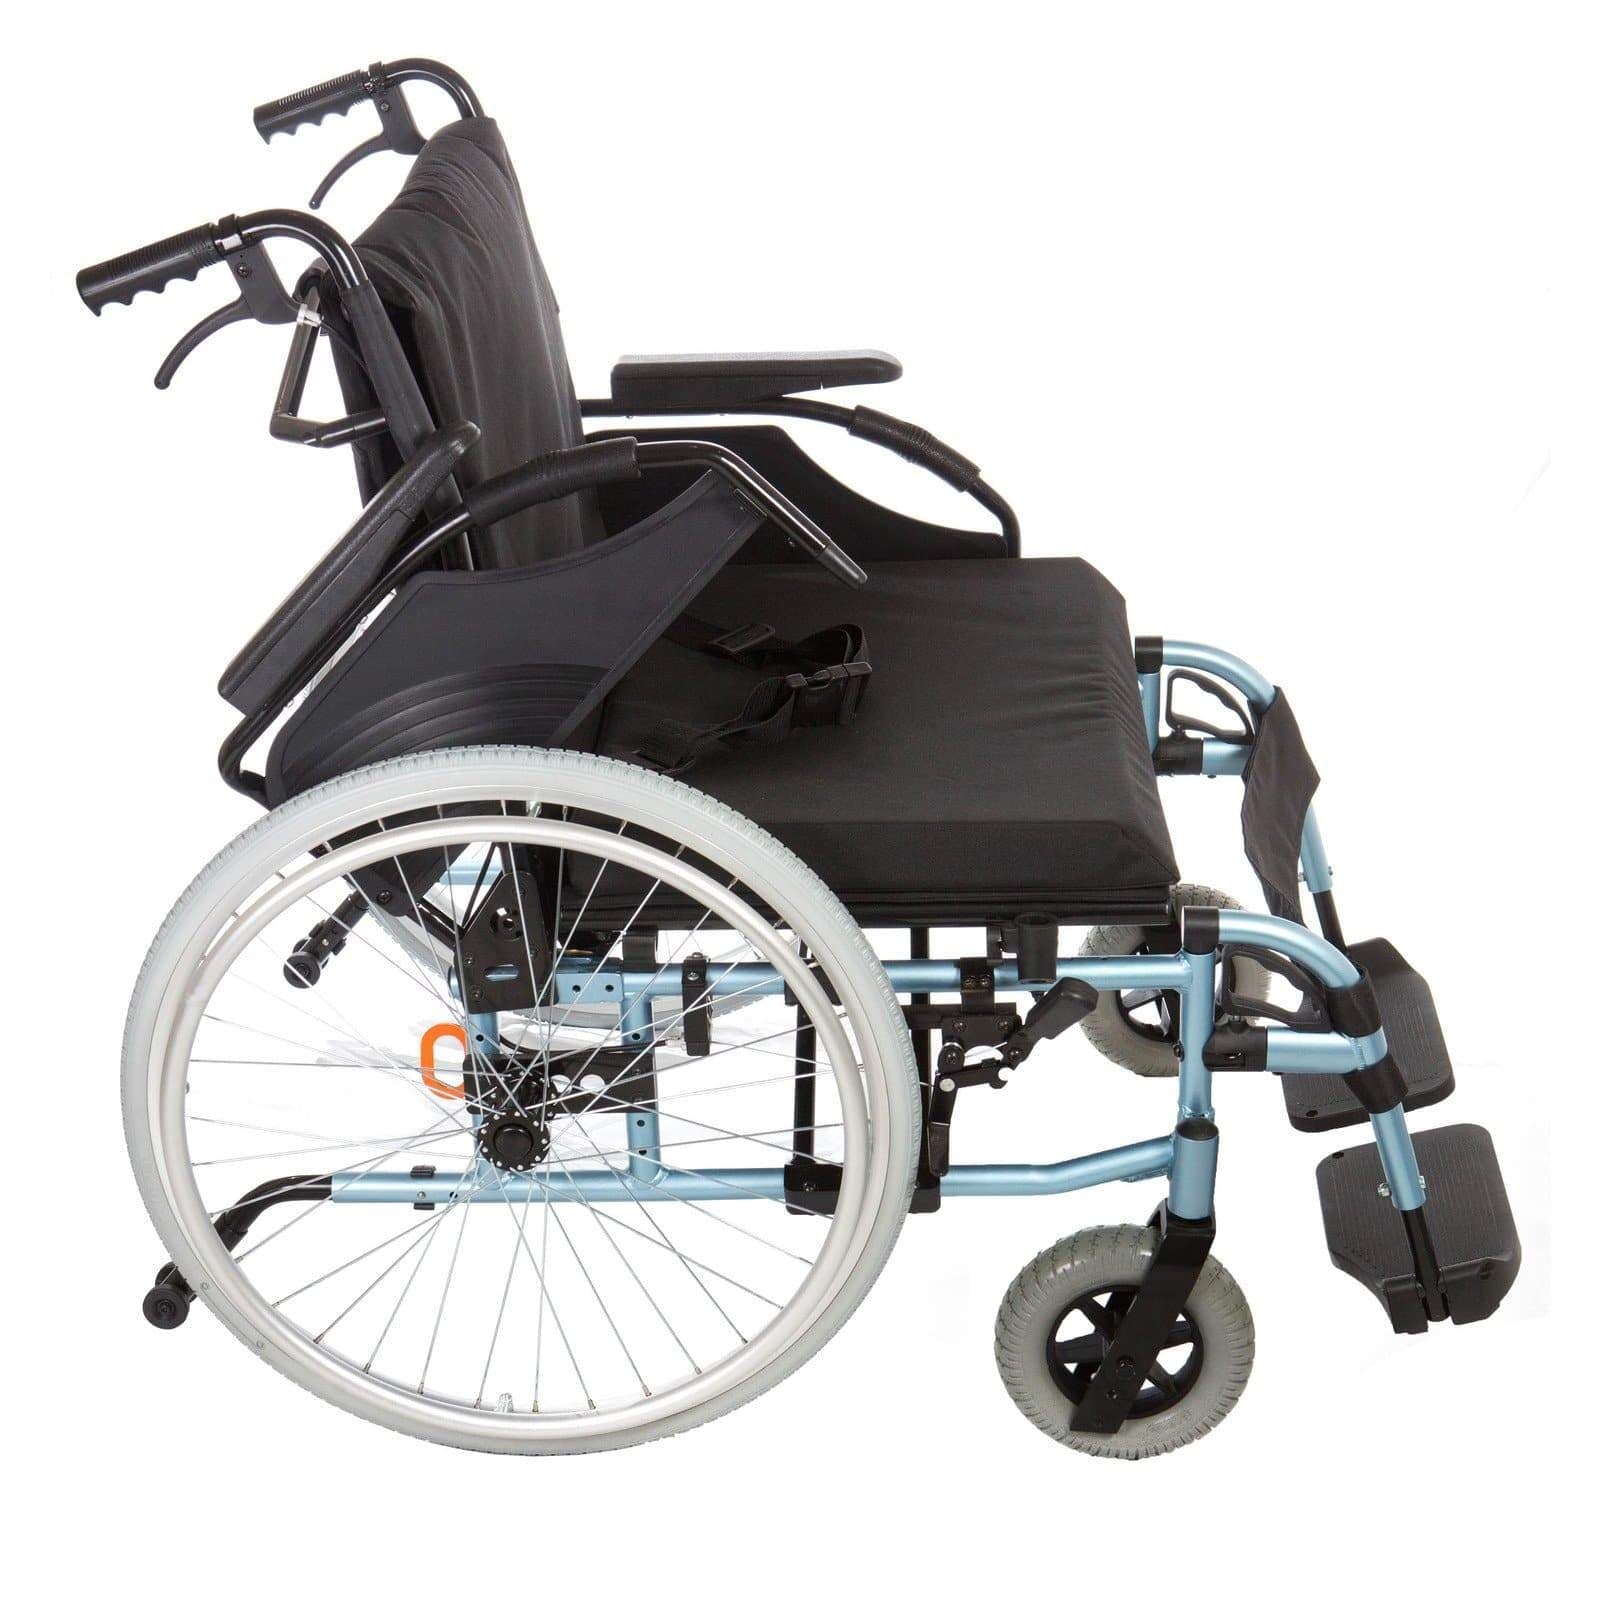 Bariatric Wheelchair - Max Weight 190kg SMW361 by SAFETY & MOB